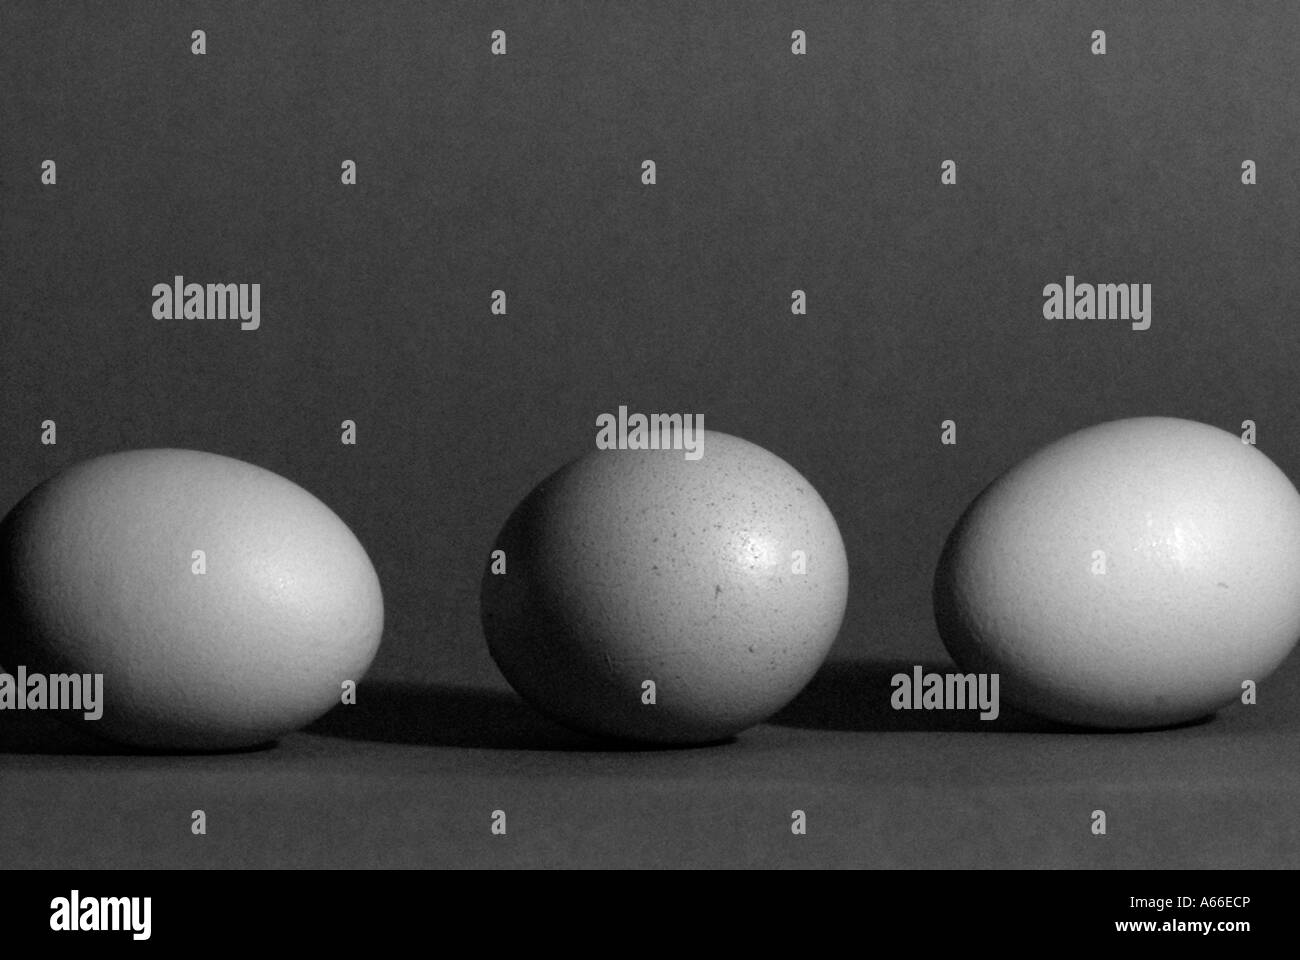 Three Eggs - Stock Image